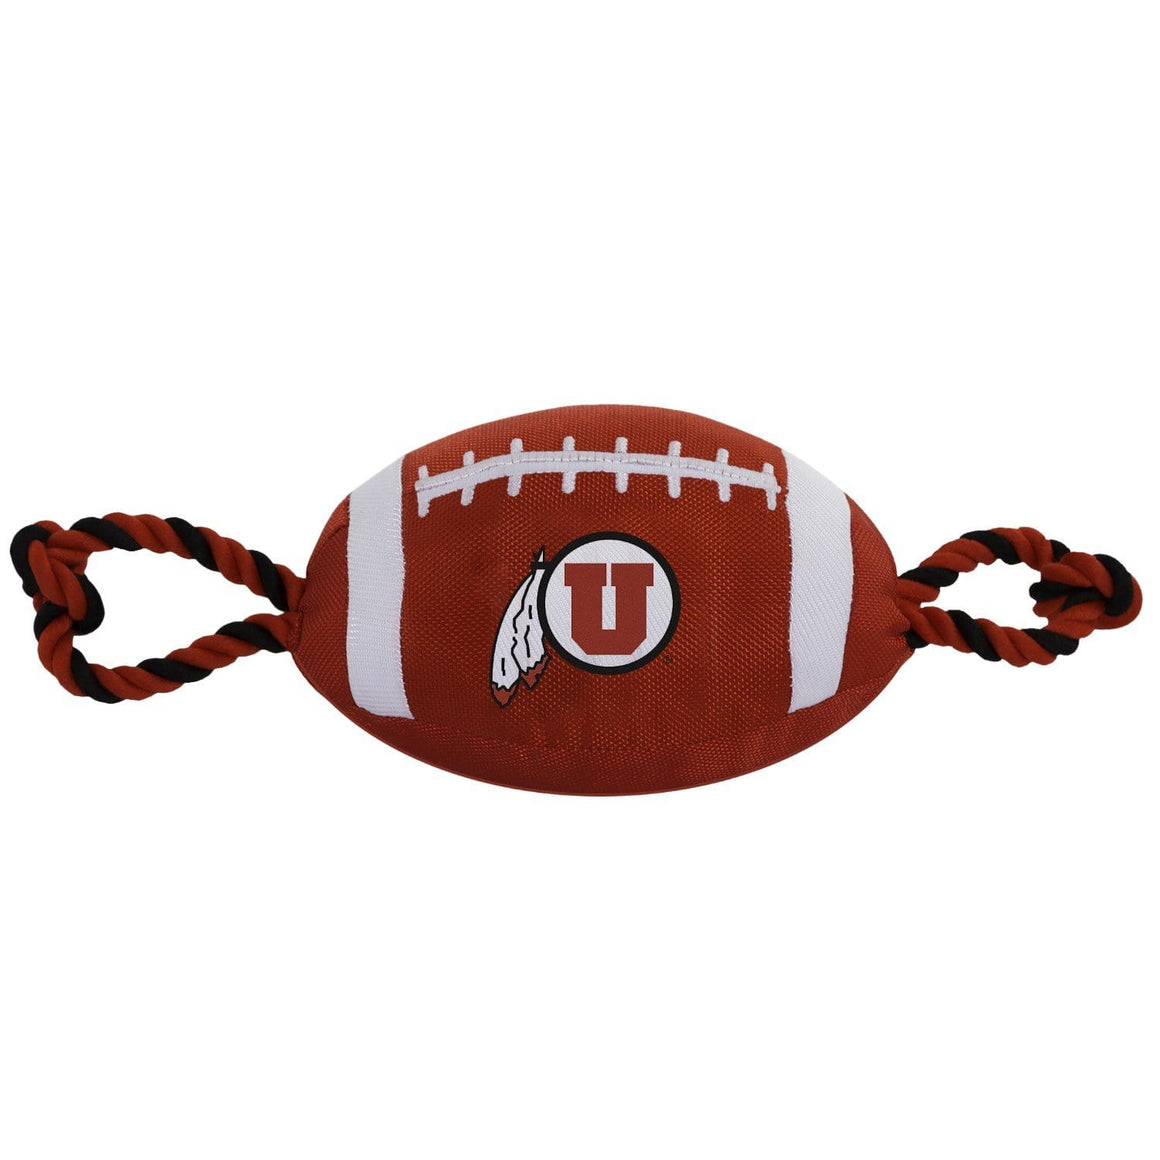 Pets First Dog-products NCAA Utah Utes Pet Nylon Football